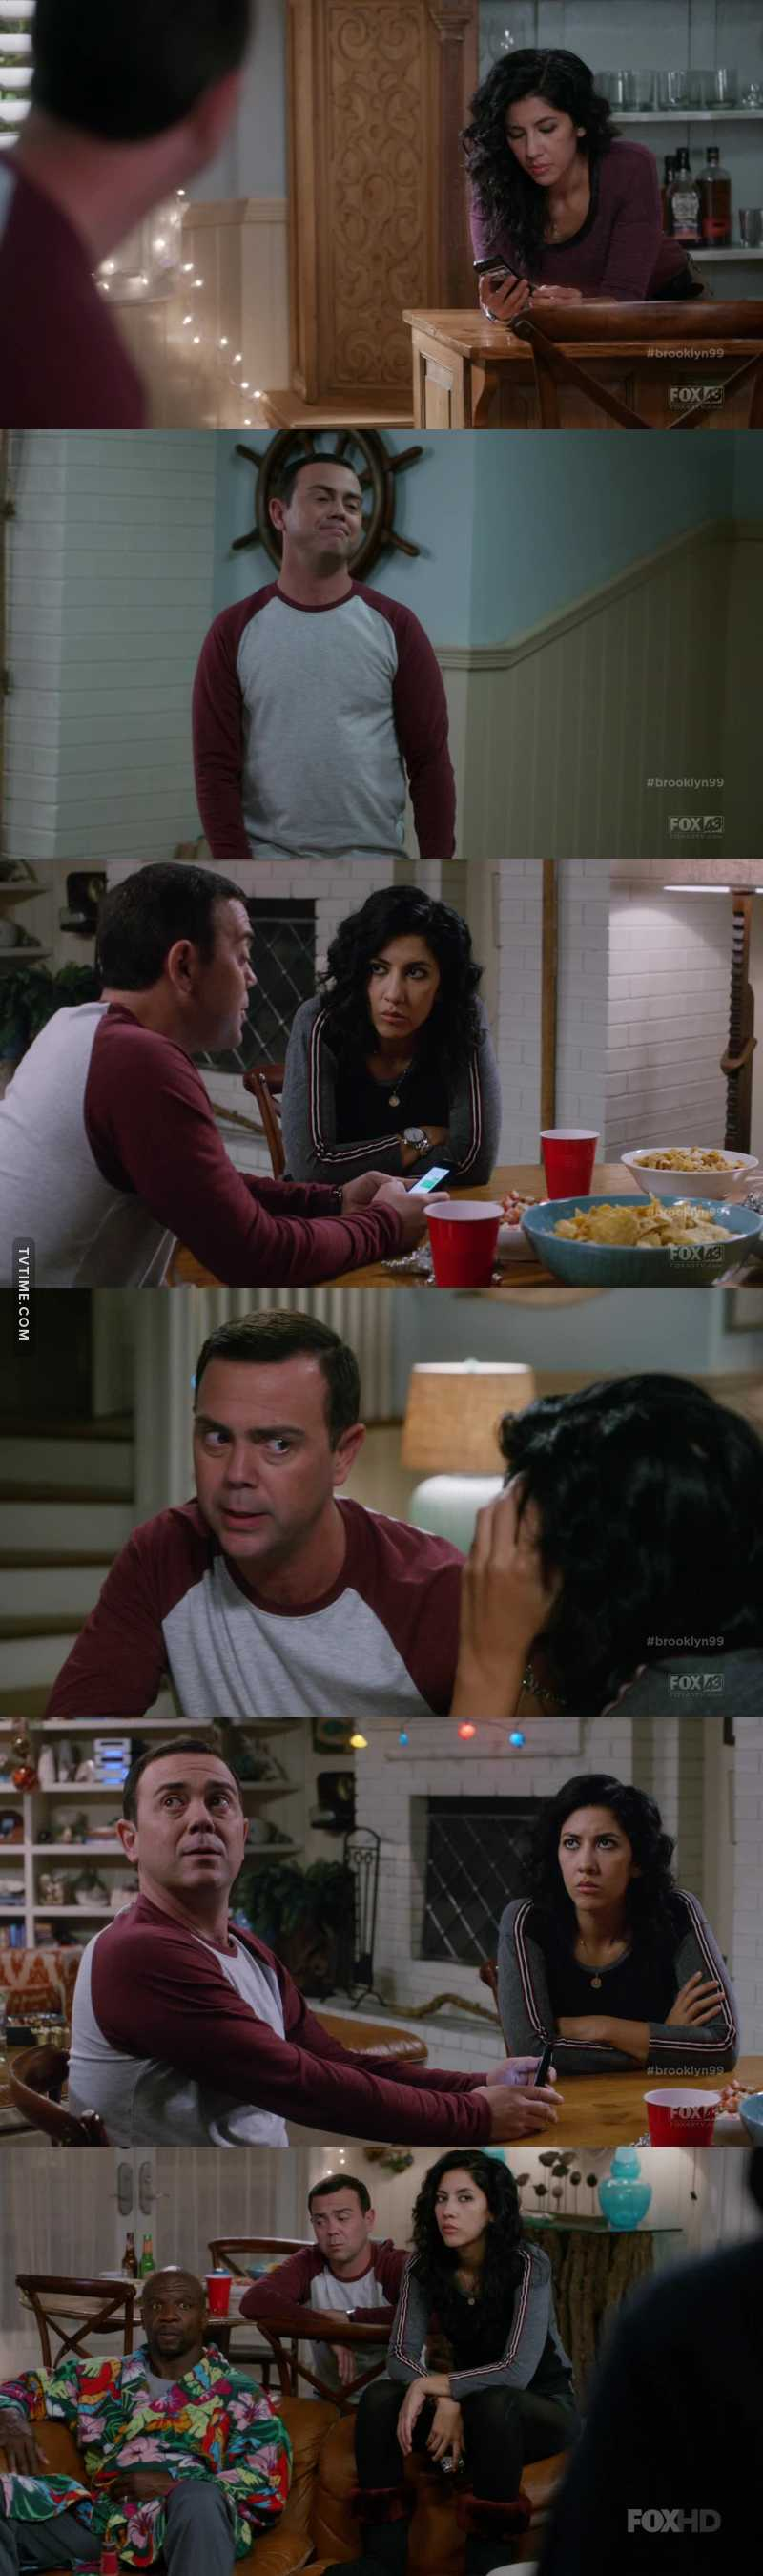 Boyle helping Rosa texting to her boyfriend is something I just needed to see! Love these two! 😍